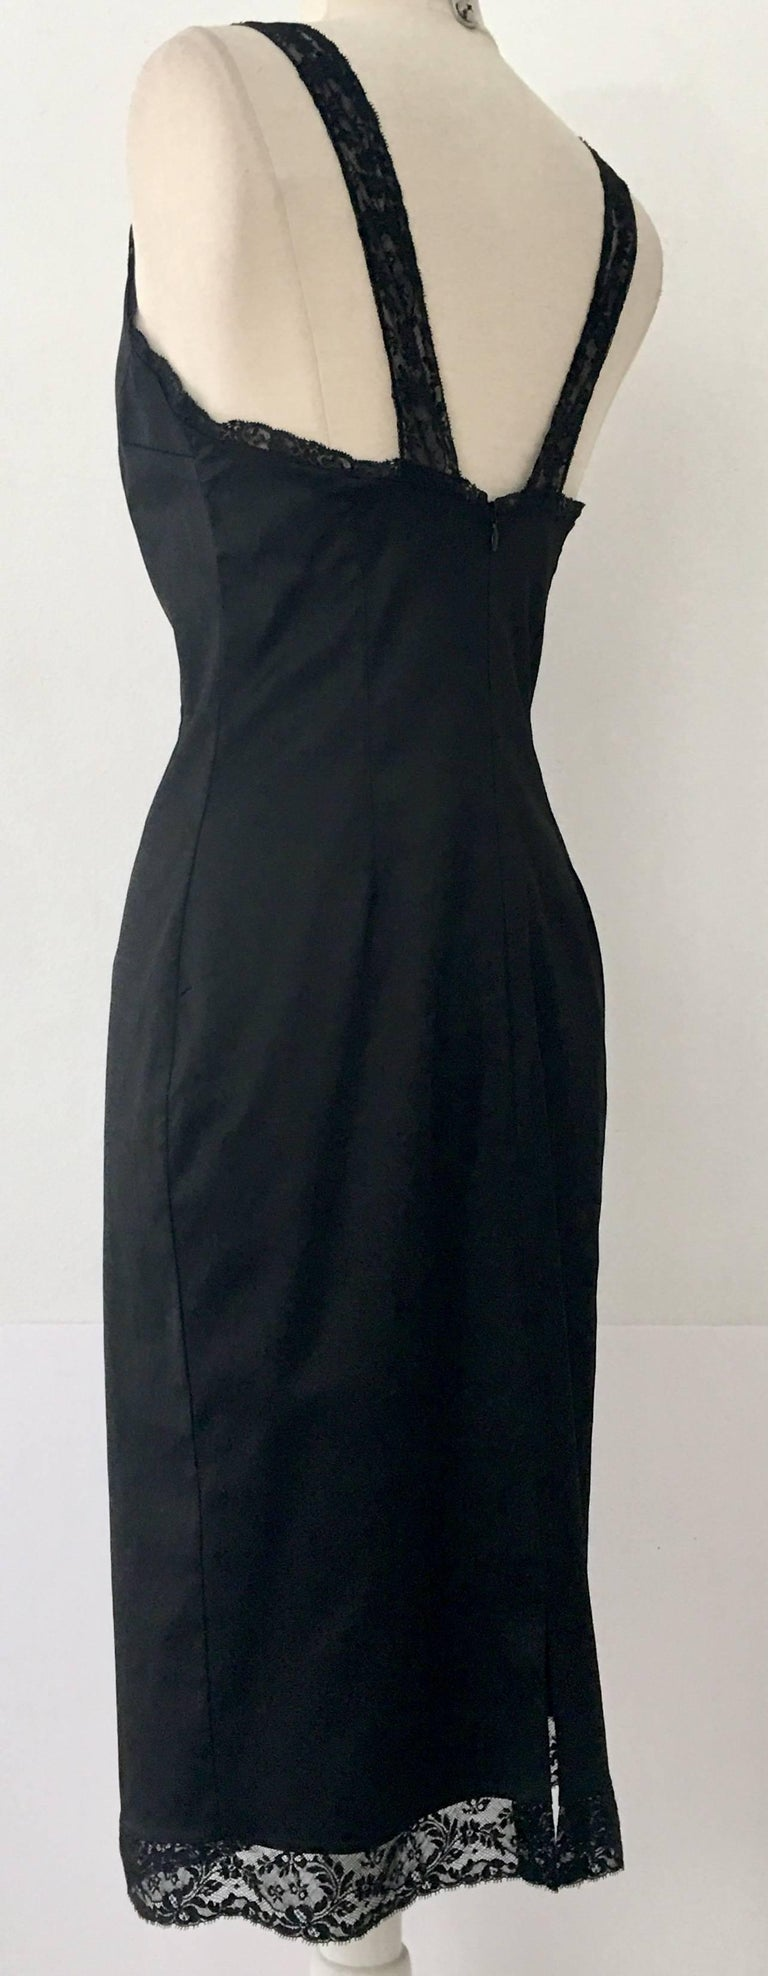 Iconic Dolce & Gabbana (D&G) Little Black Dress. This fitted stretch black